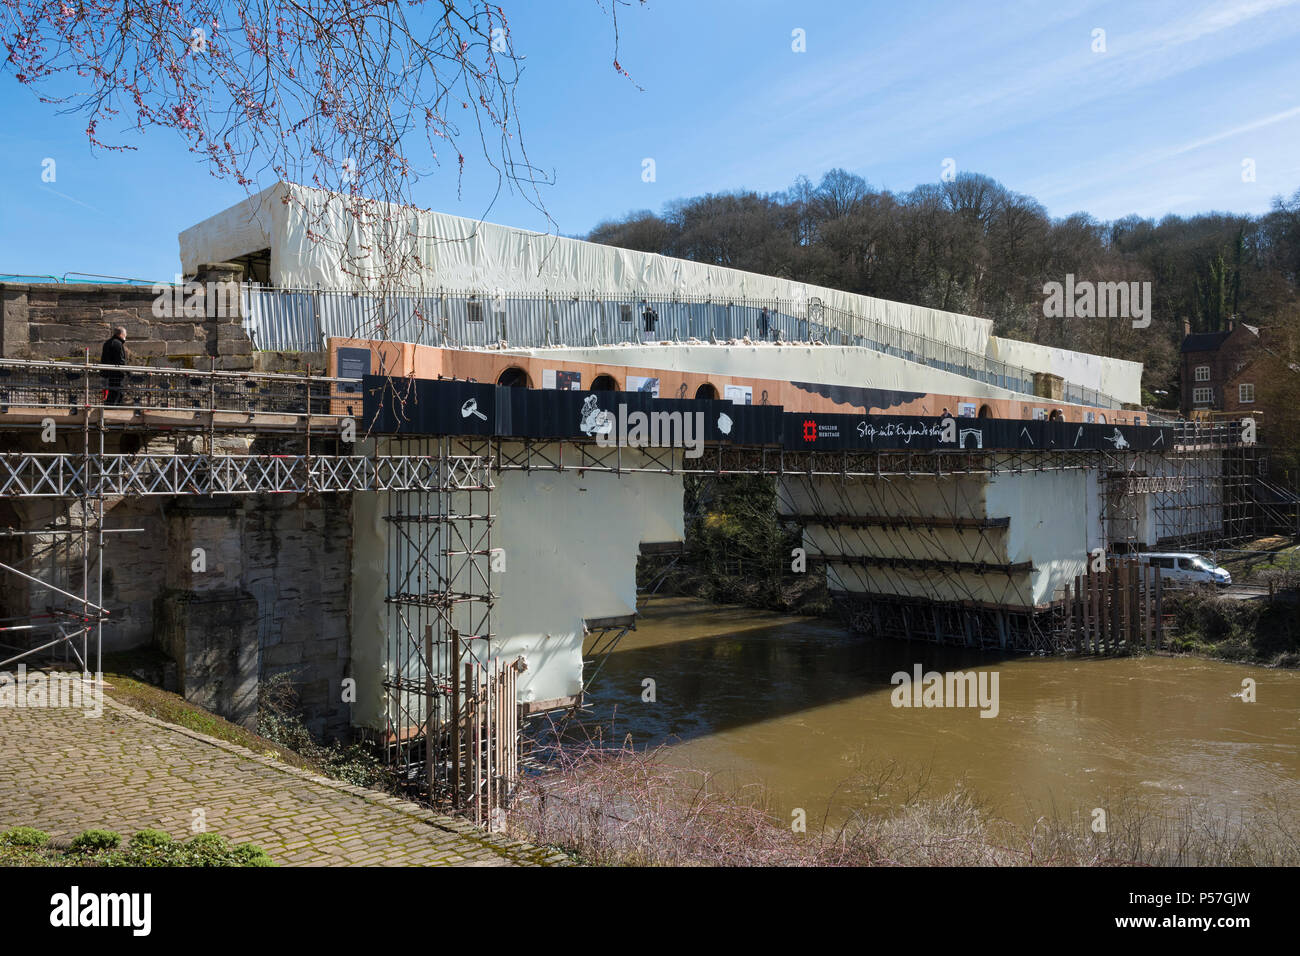 The Iron Bridge with temporary walkway during restoration